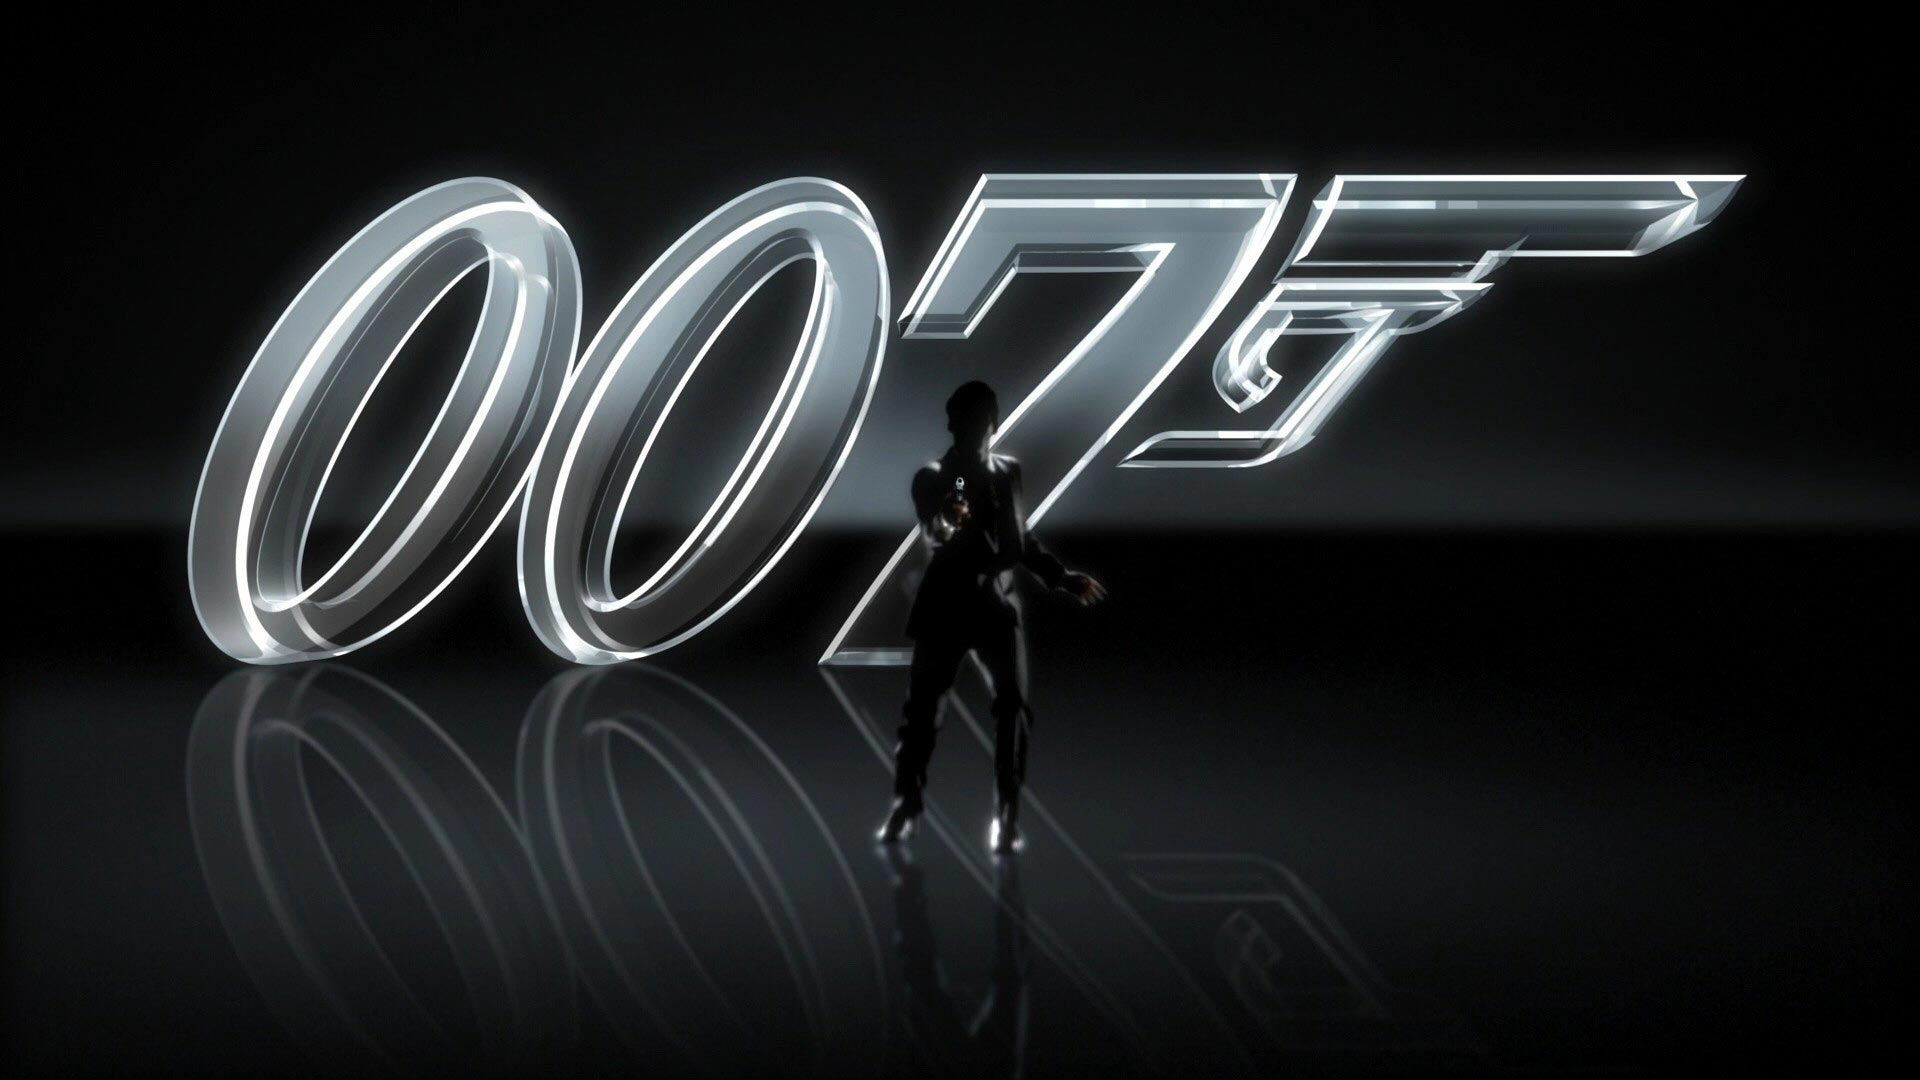 Wallpaper is also available for the other James Bond Movies 1920x1080